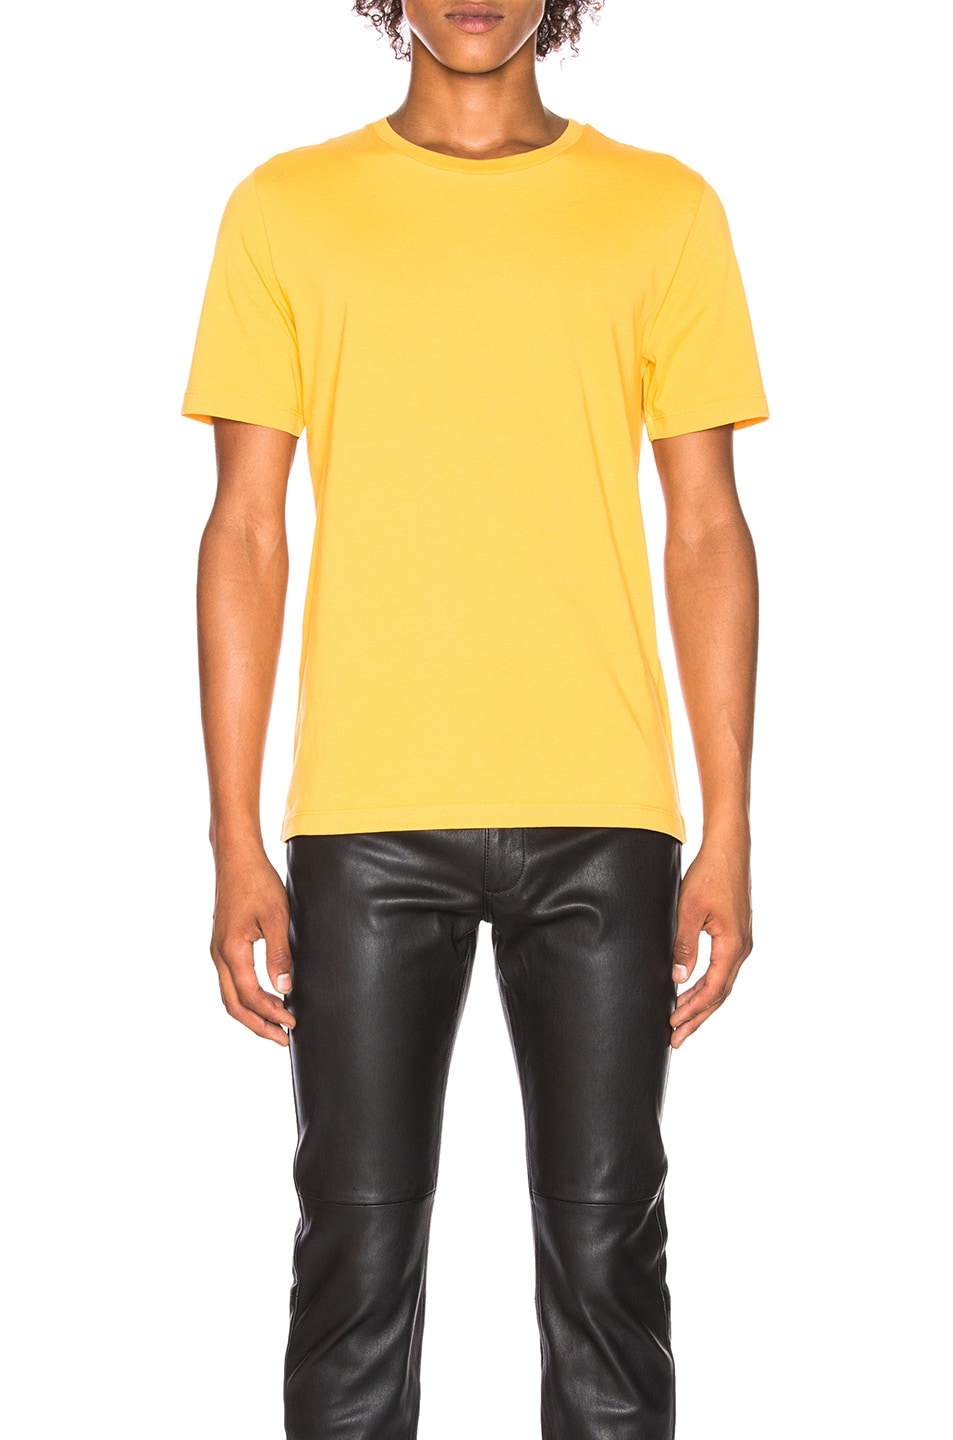 Image 1 of Maison Margiela Garment Dyed Tee in Yolk